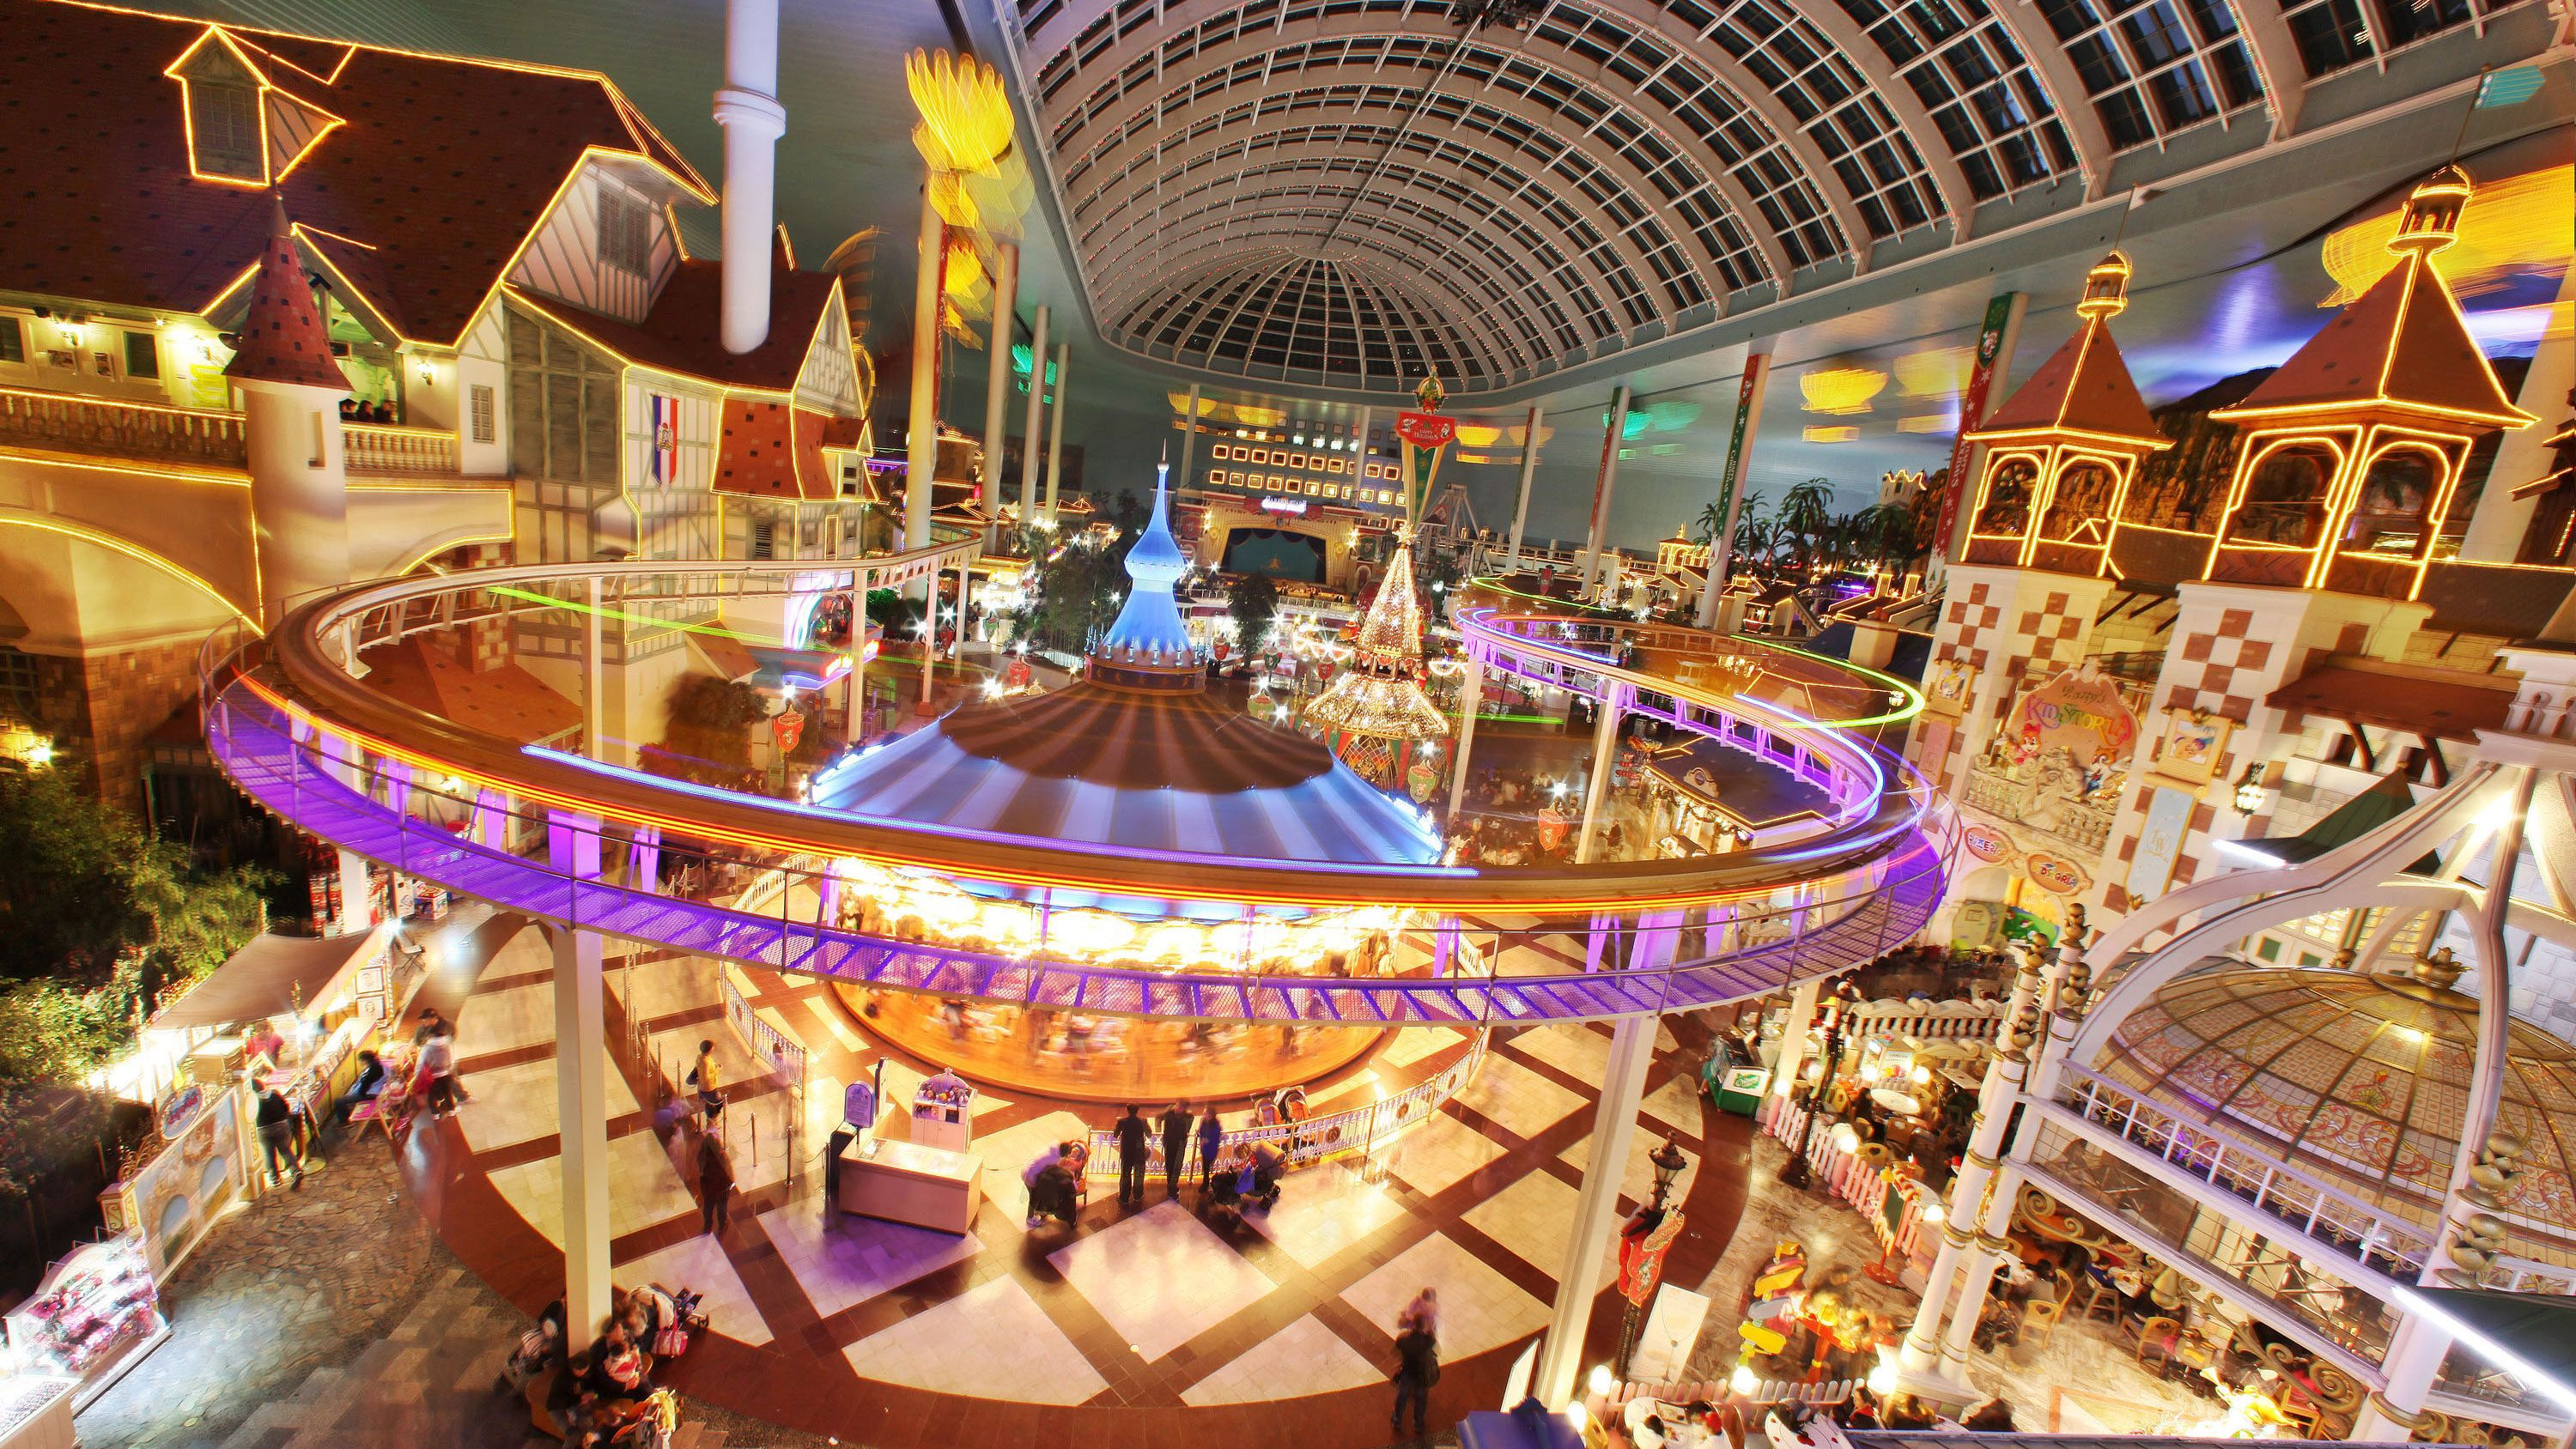 View inside the Lotte World Theme Park in Seoul